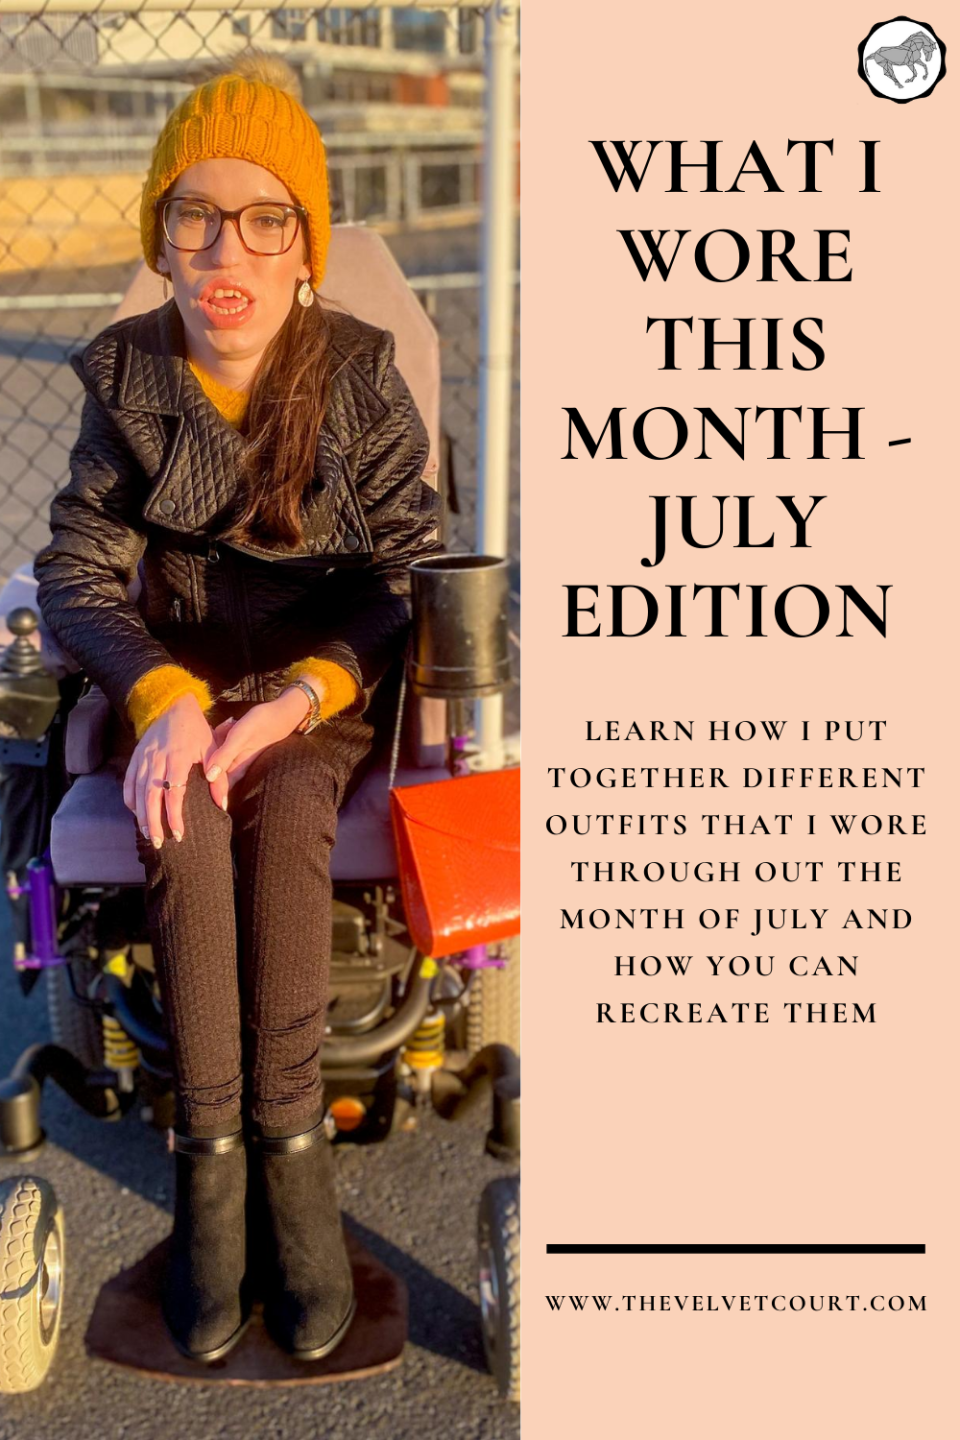 """I share with you a collection of winter race day outfits featuring red, yellow and orange clothes, in the July edition of """"What I Wore This Month""""!"""